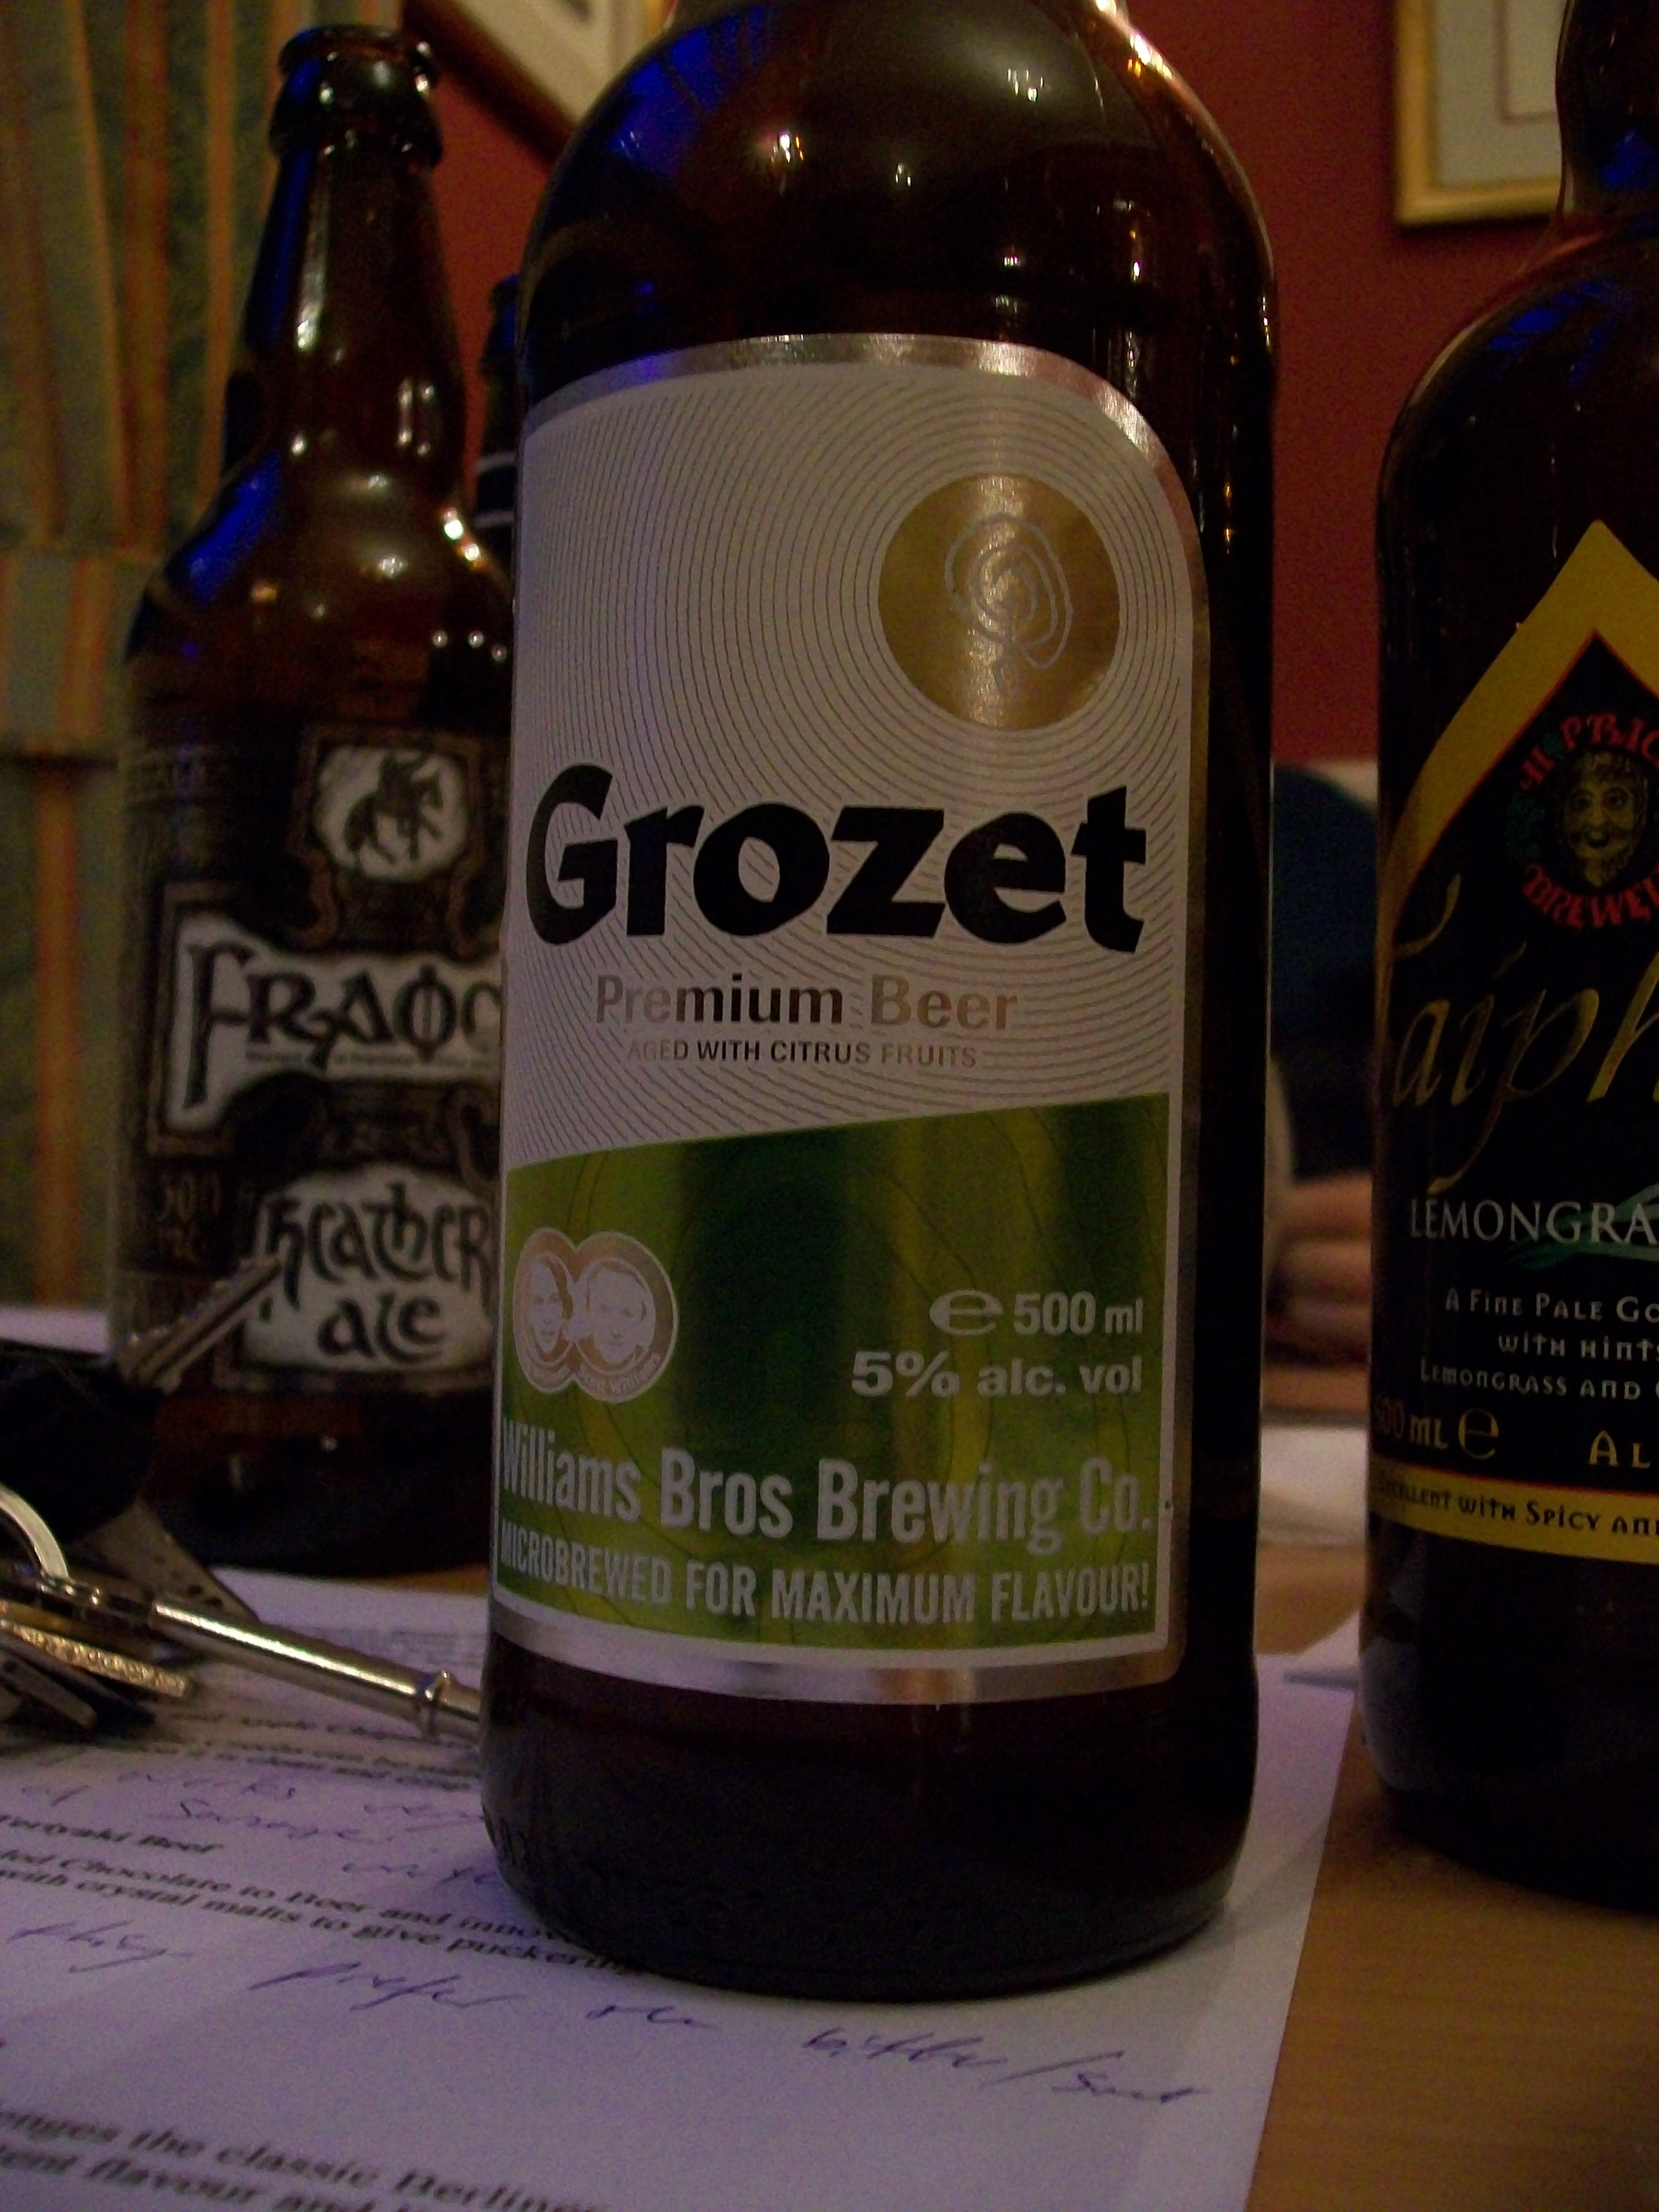 Grozet, Lager - Sounds Eastern European but is actually Scottish!